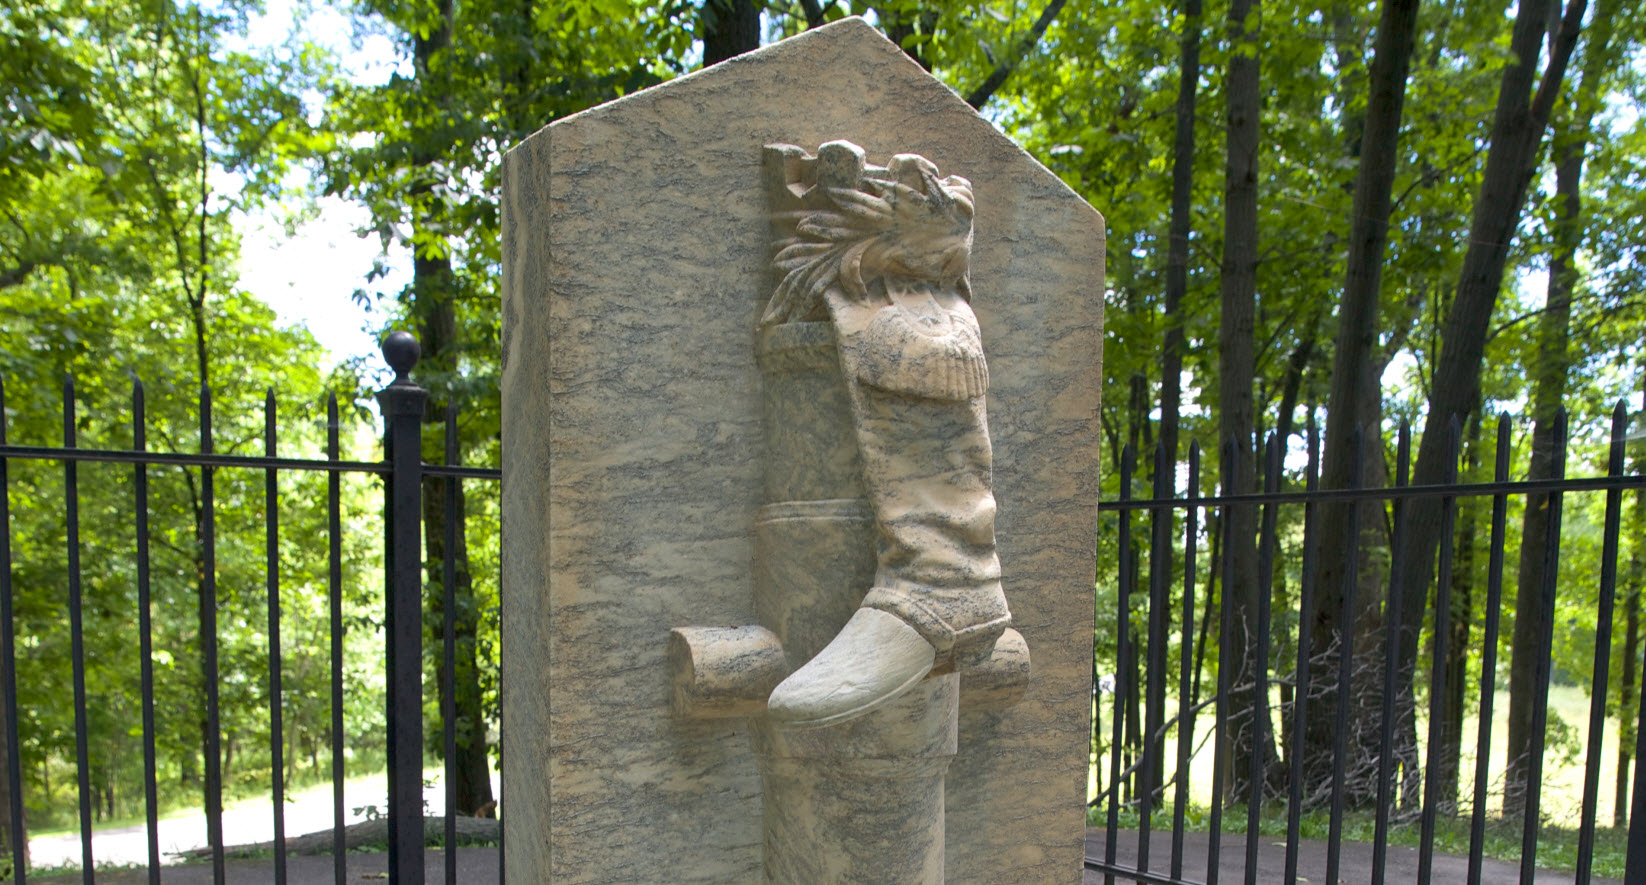 The monument to Arnold's leg at Saratoga National Historical Park. MVLA.